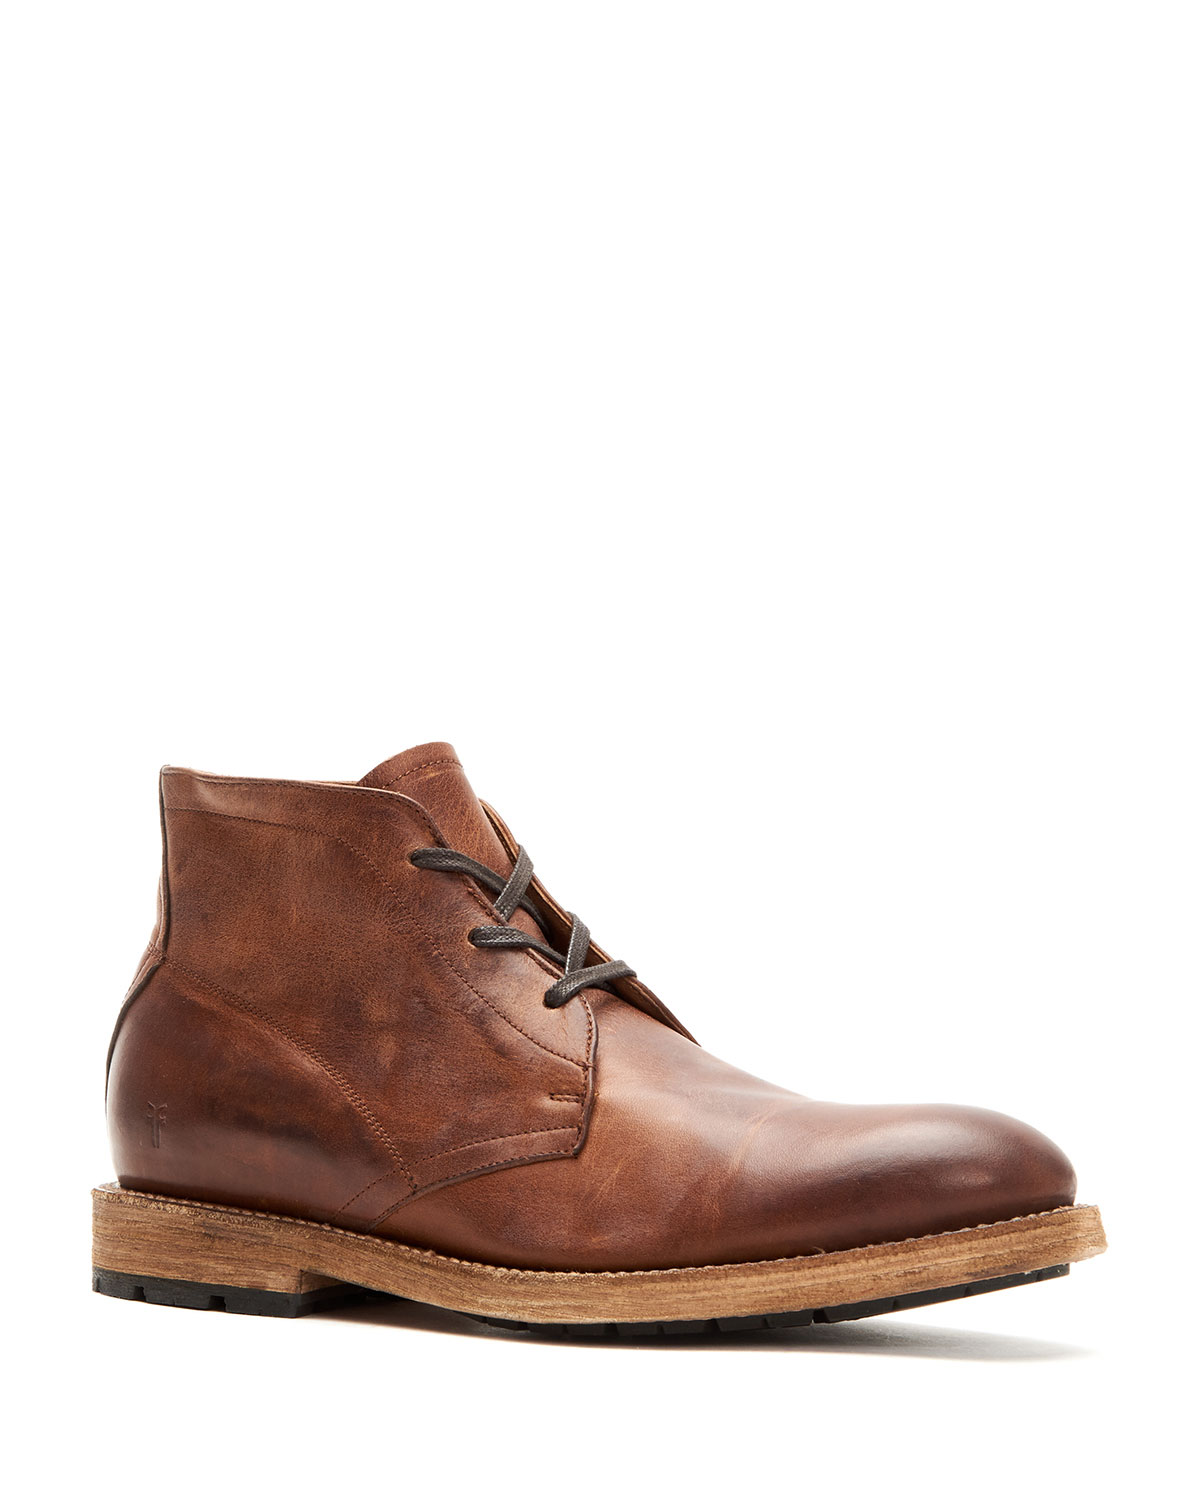 Men's Bowery Leather Lace-Up Chukka Boots